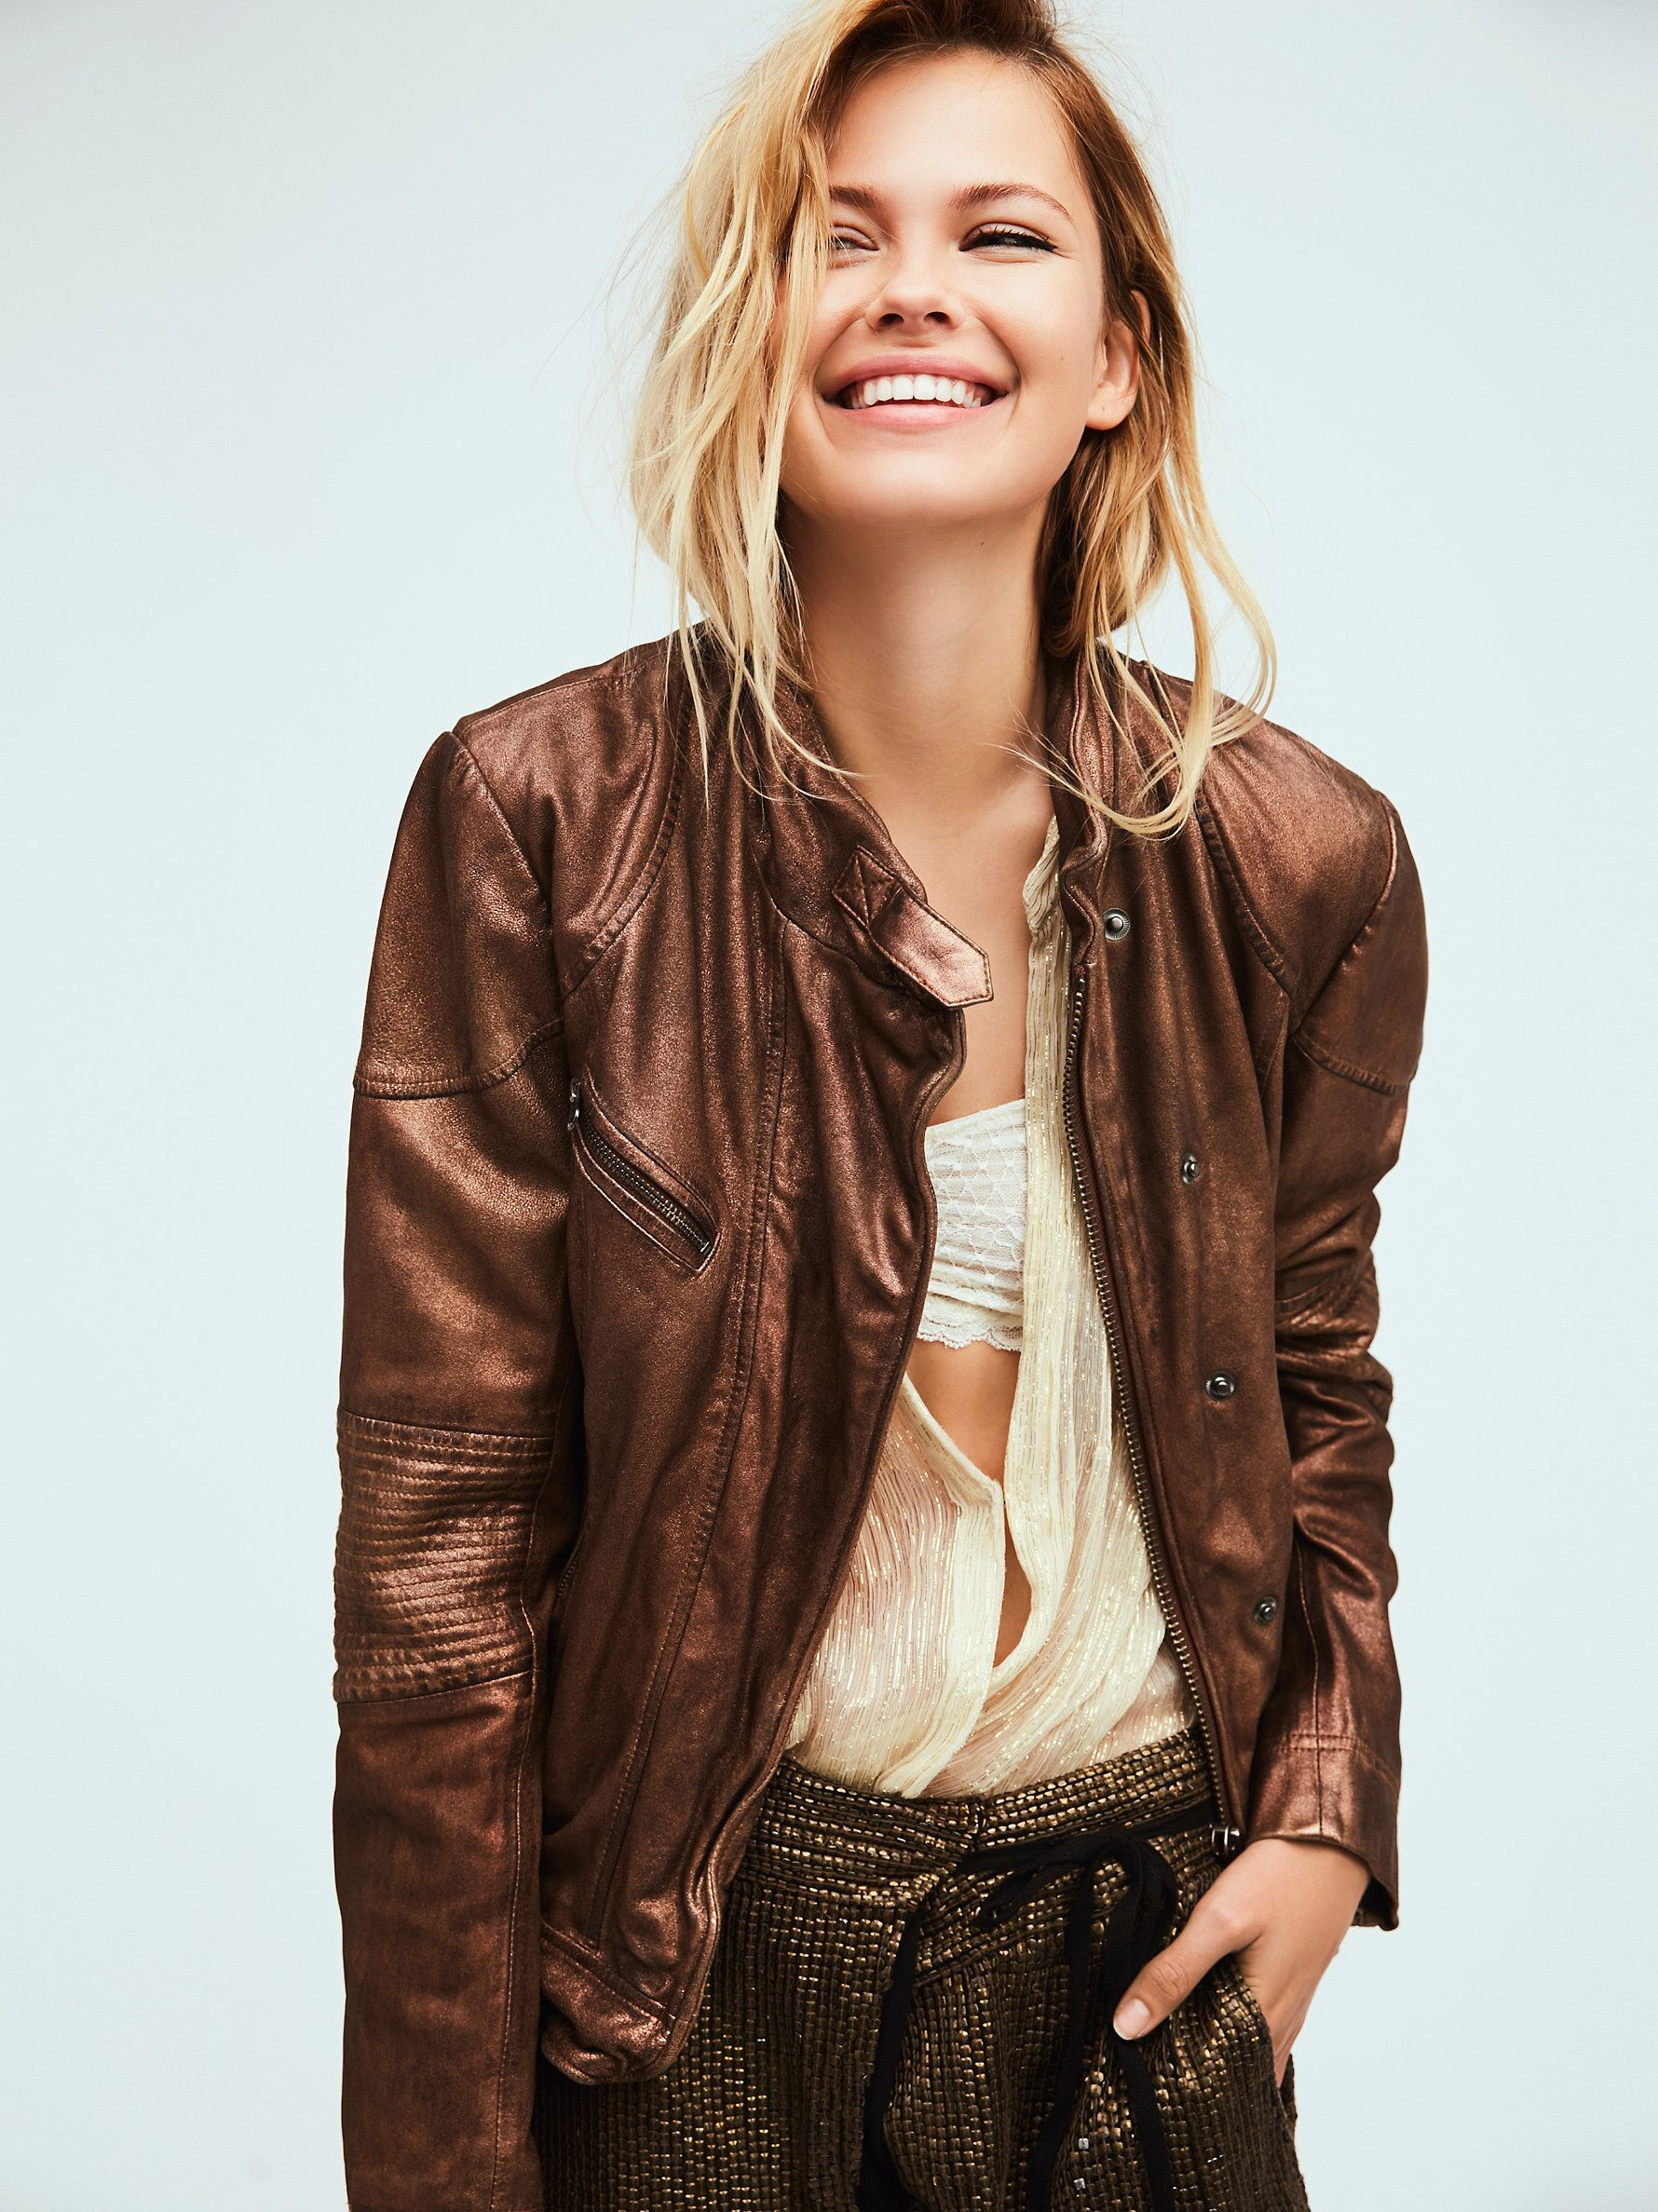 Fitted And Rugged Leather Jacket Leather Jacket Rugged Leather Clothes Design